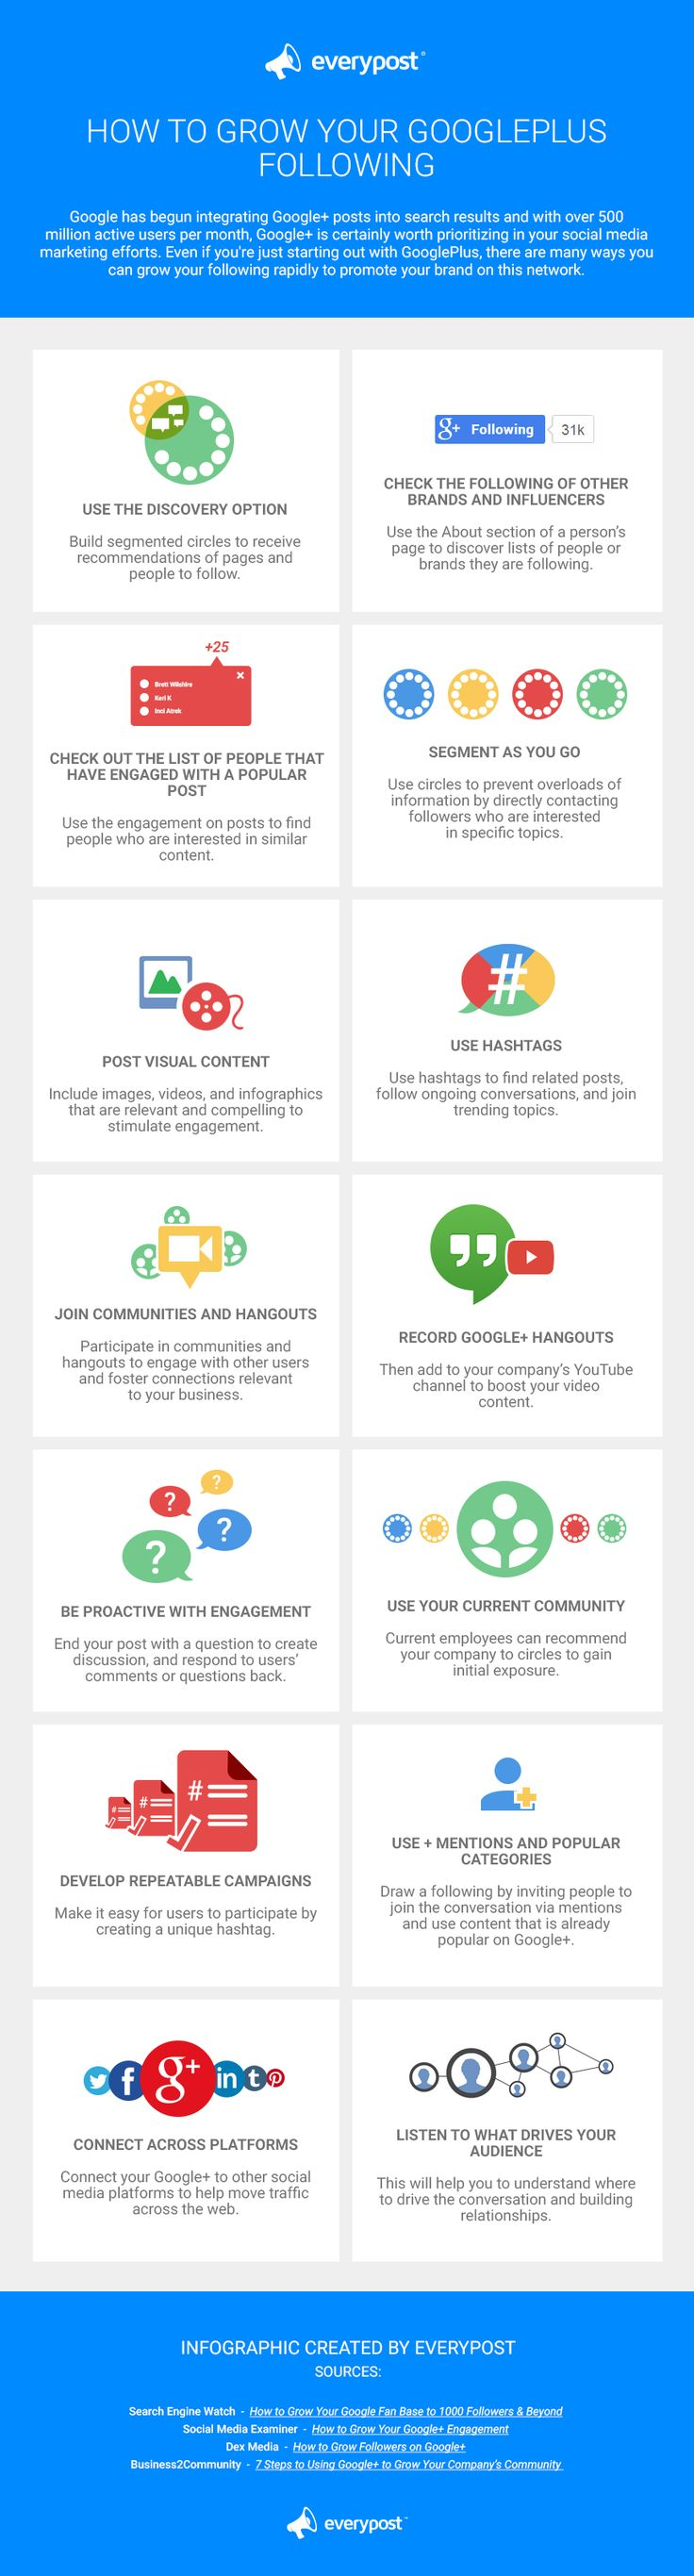 #SocialMedia Marketing: 14 Ways To Grow Your #GooglePlus Following - #infographic